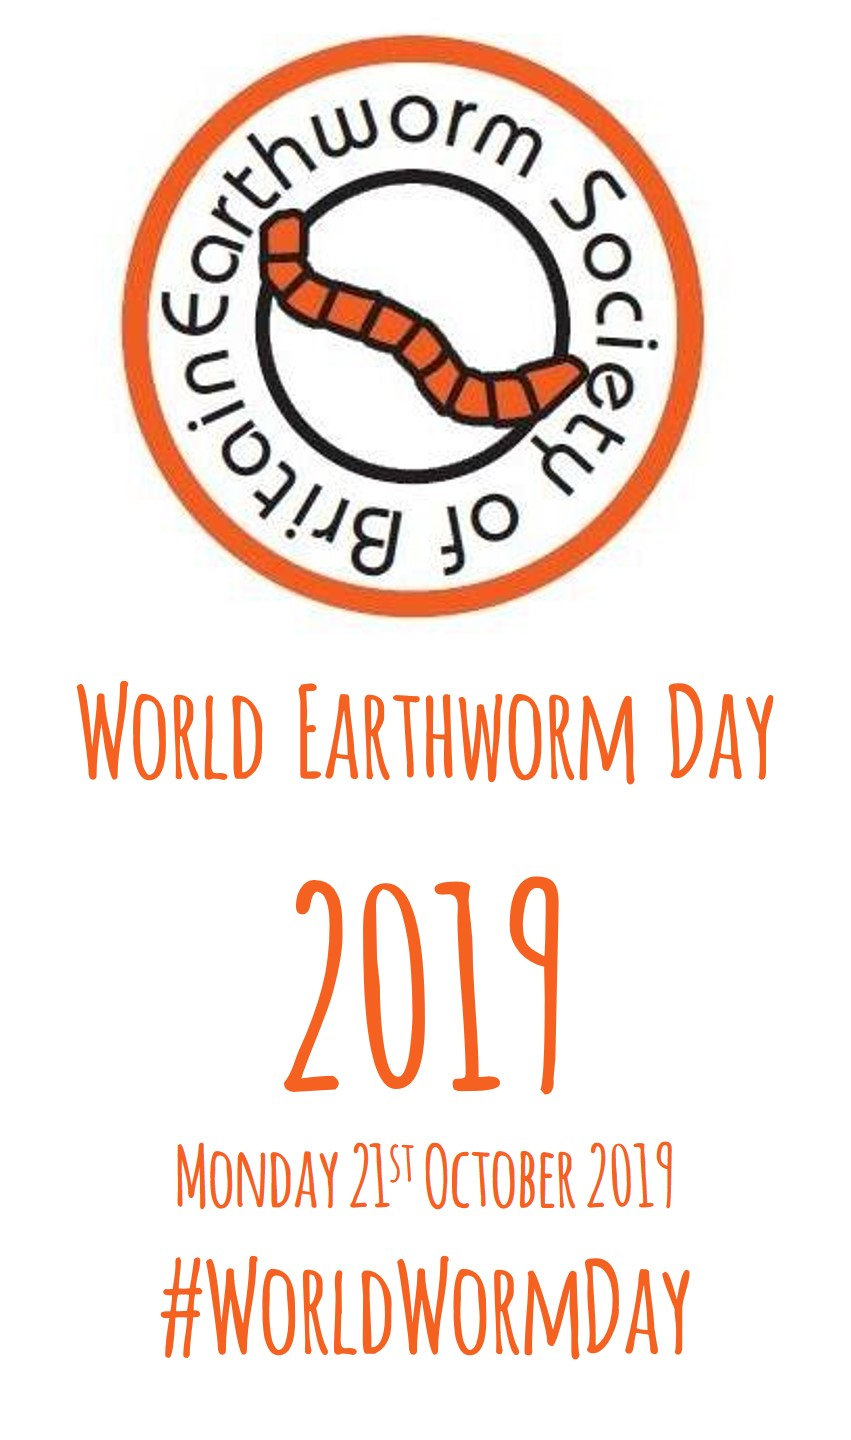 World Earthworm Day 2019 story image